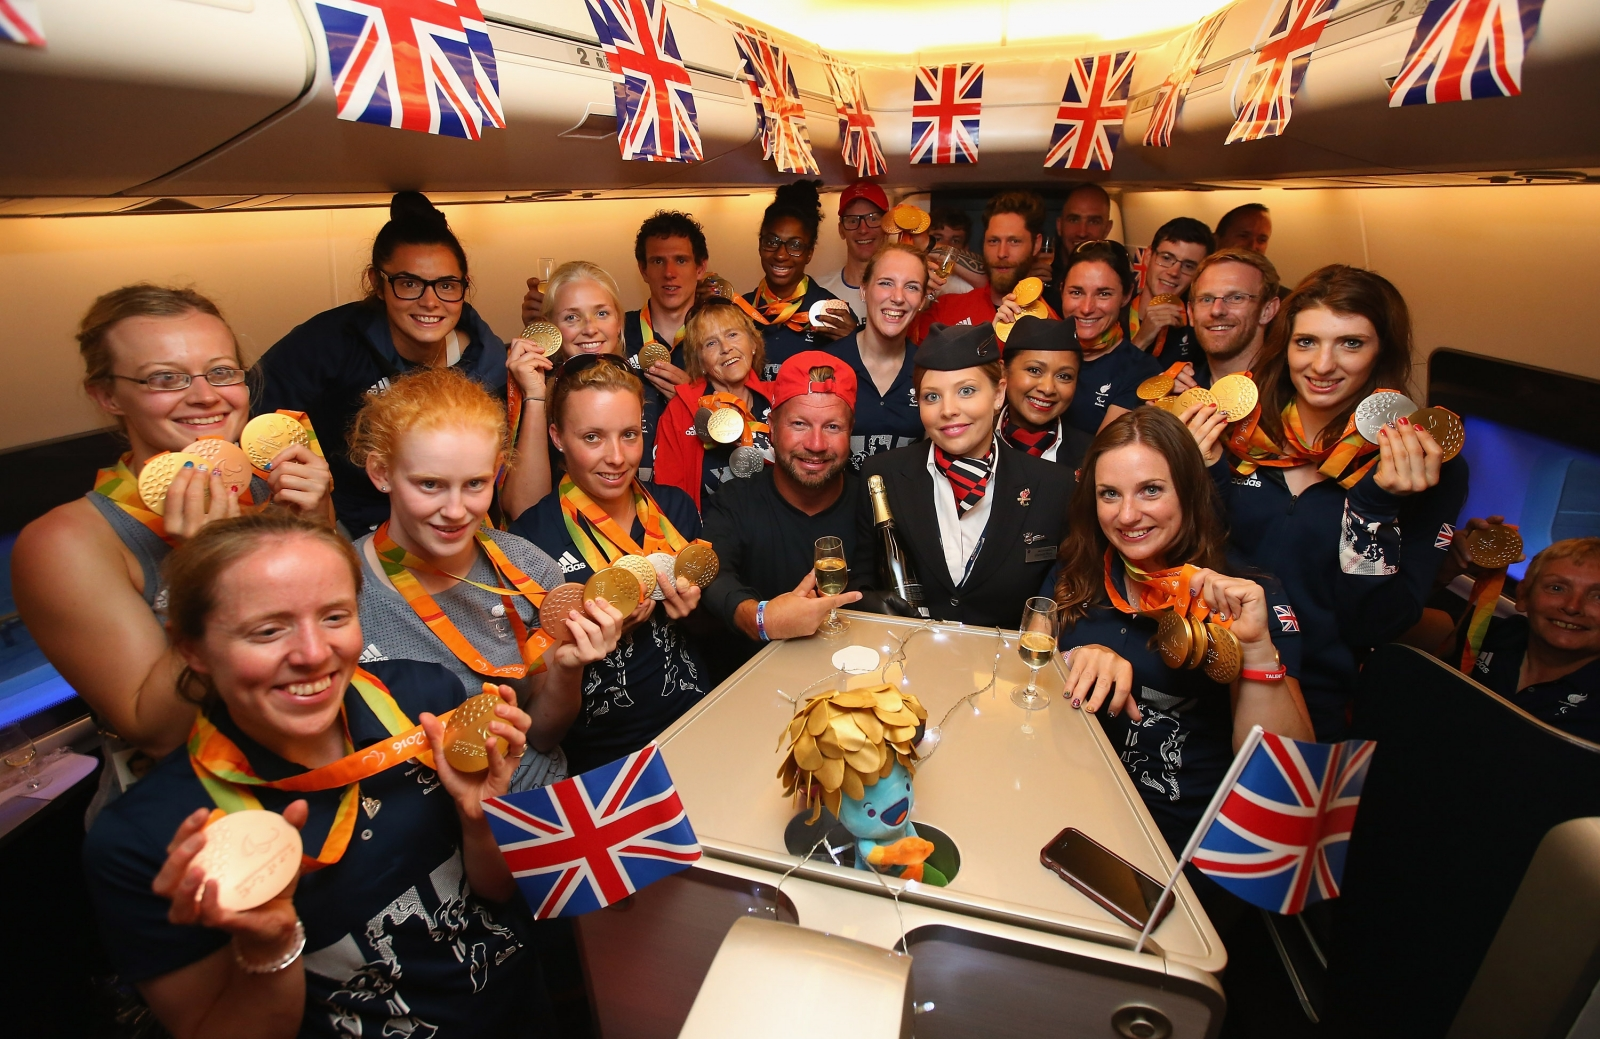 Team GB on board their flight home